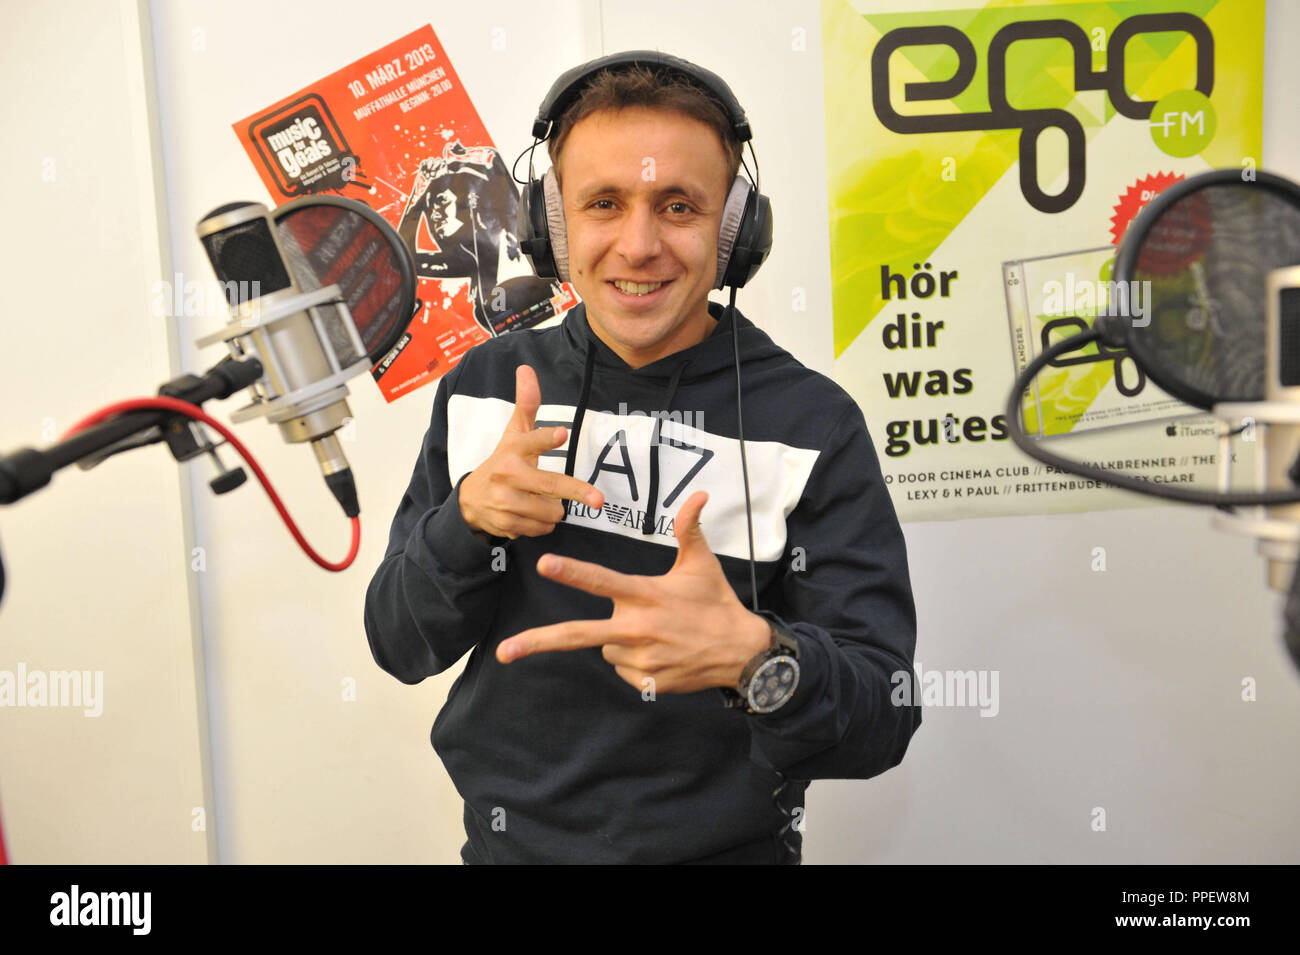 The Brazilian professional football player Rafinha from Bayern Munich advertises in a broadcast of Radio egoFM the concert project 'Music for Goals', which turns against racism, xenophobia and violence in society. - Stock Image